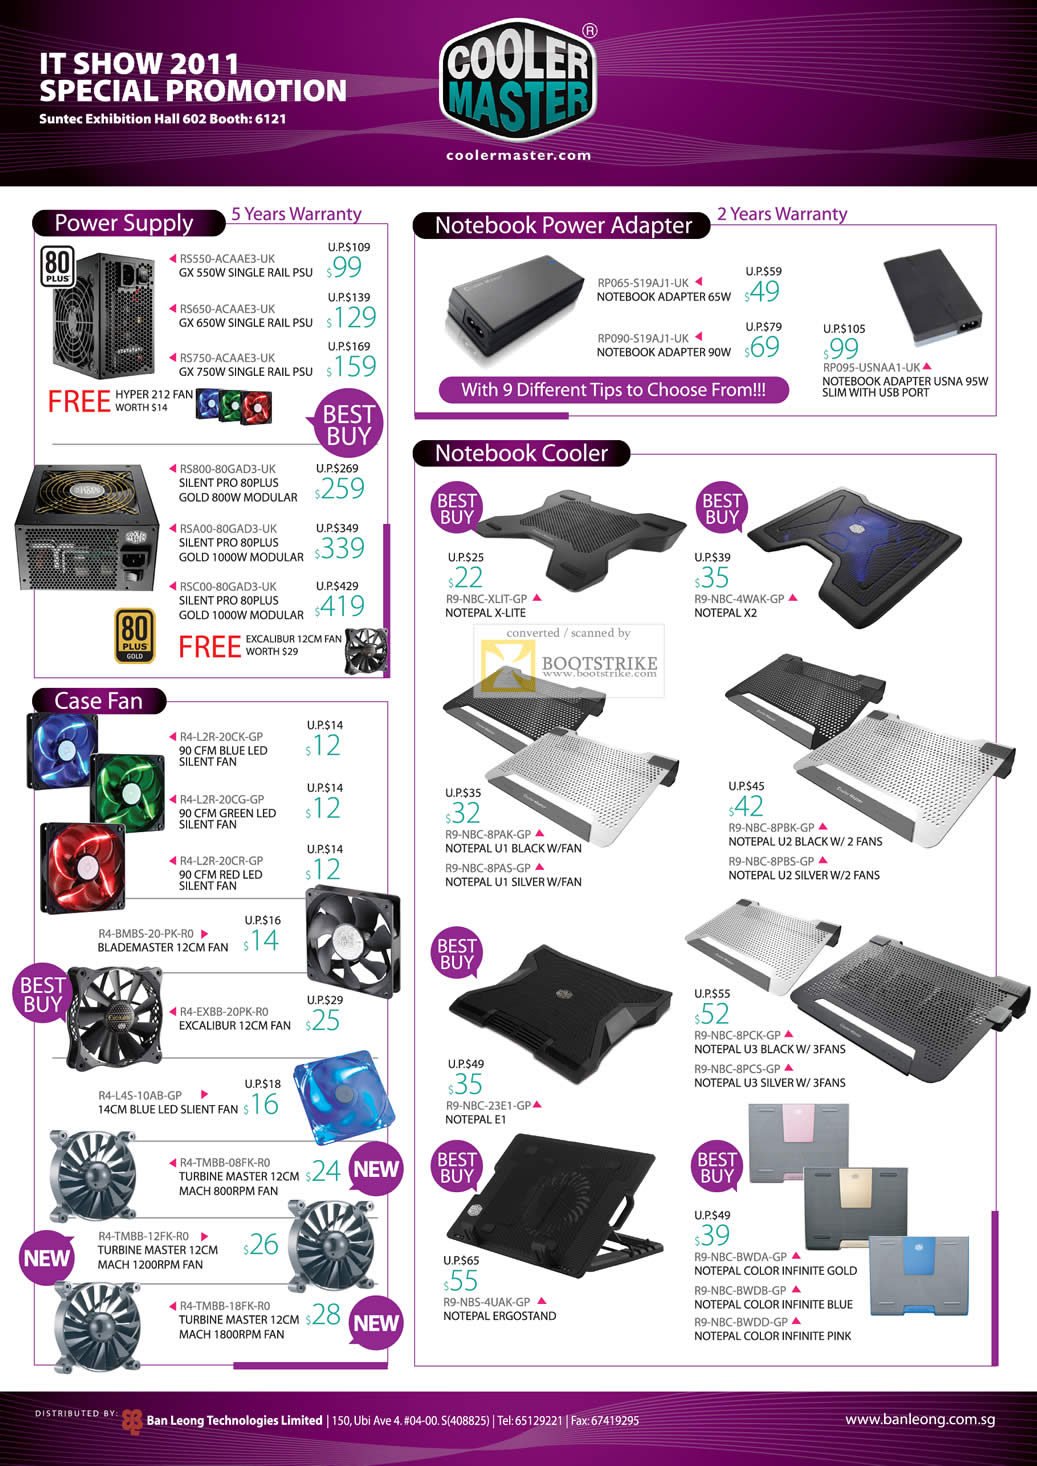 IT Show 2011 price list image brochure of Ban Leong Cooler Master Power Supply Adapter Notebook Cooler GX Silent Pro Case Fan Notepal Ergostand